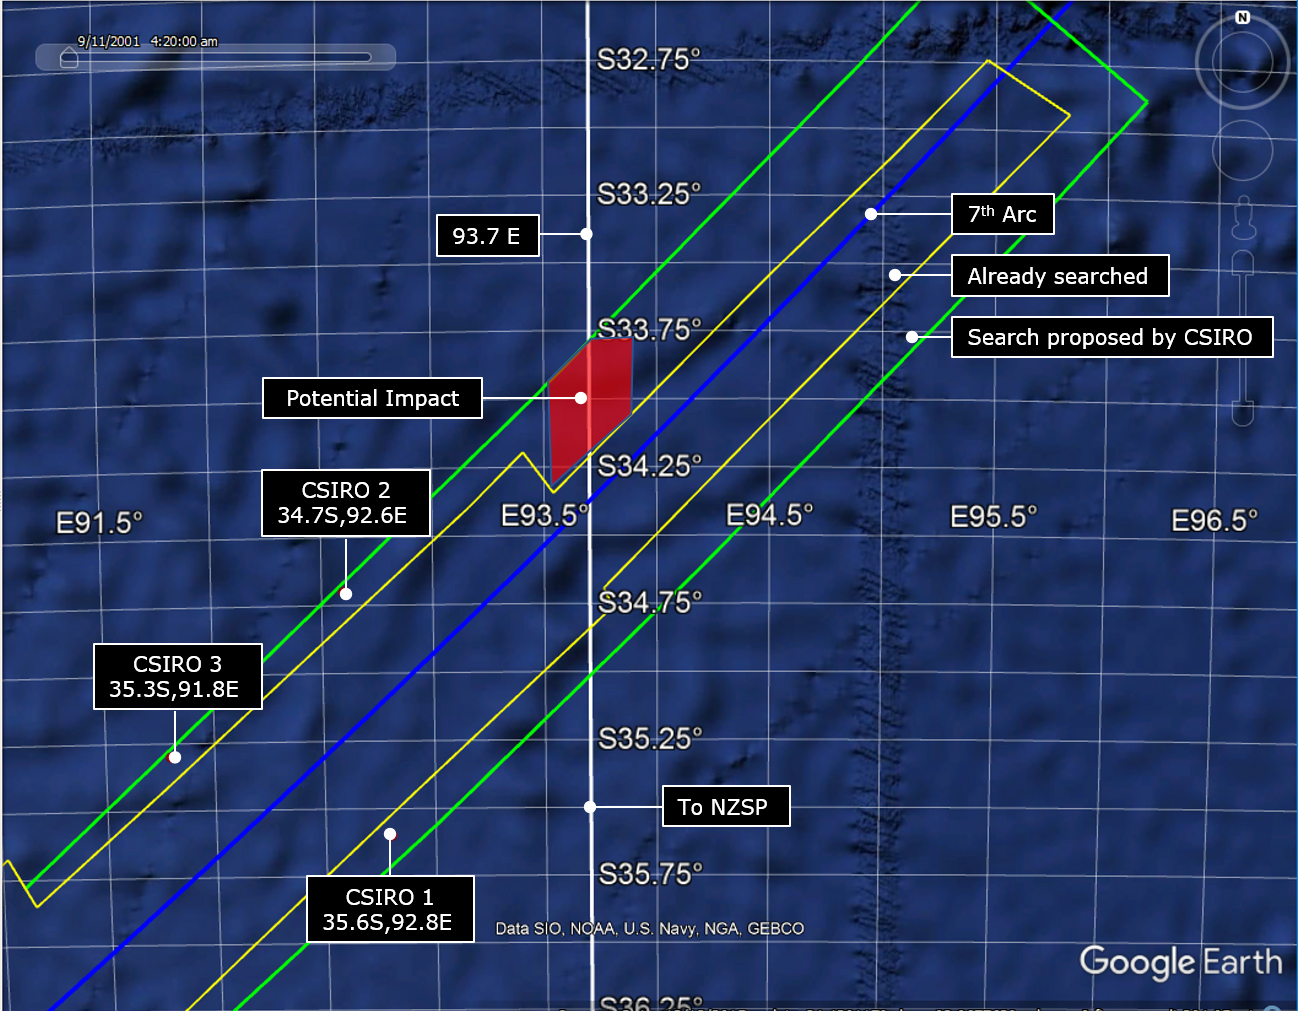 MH370 search graphic